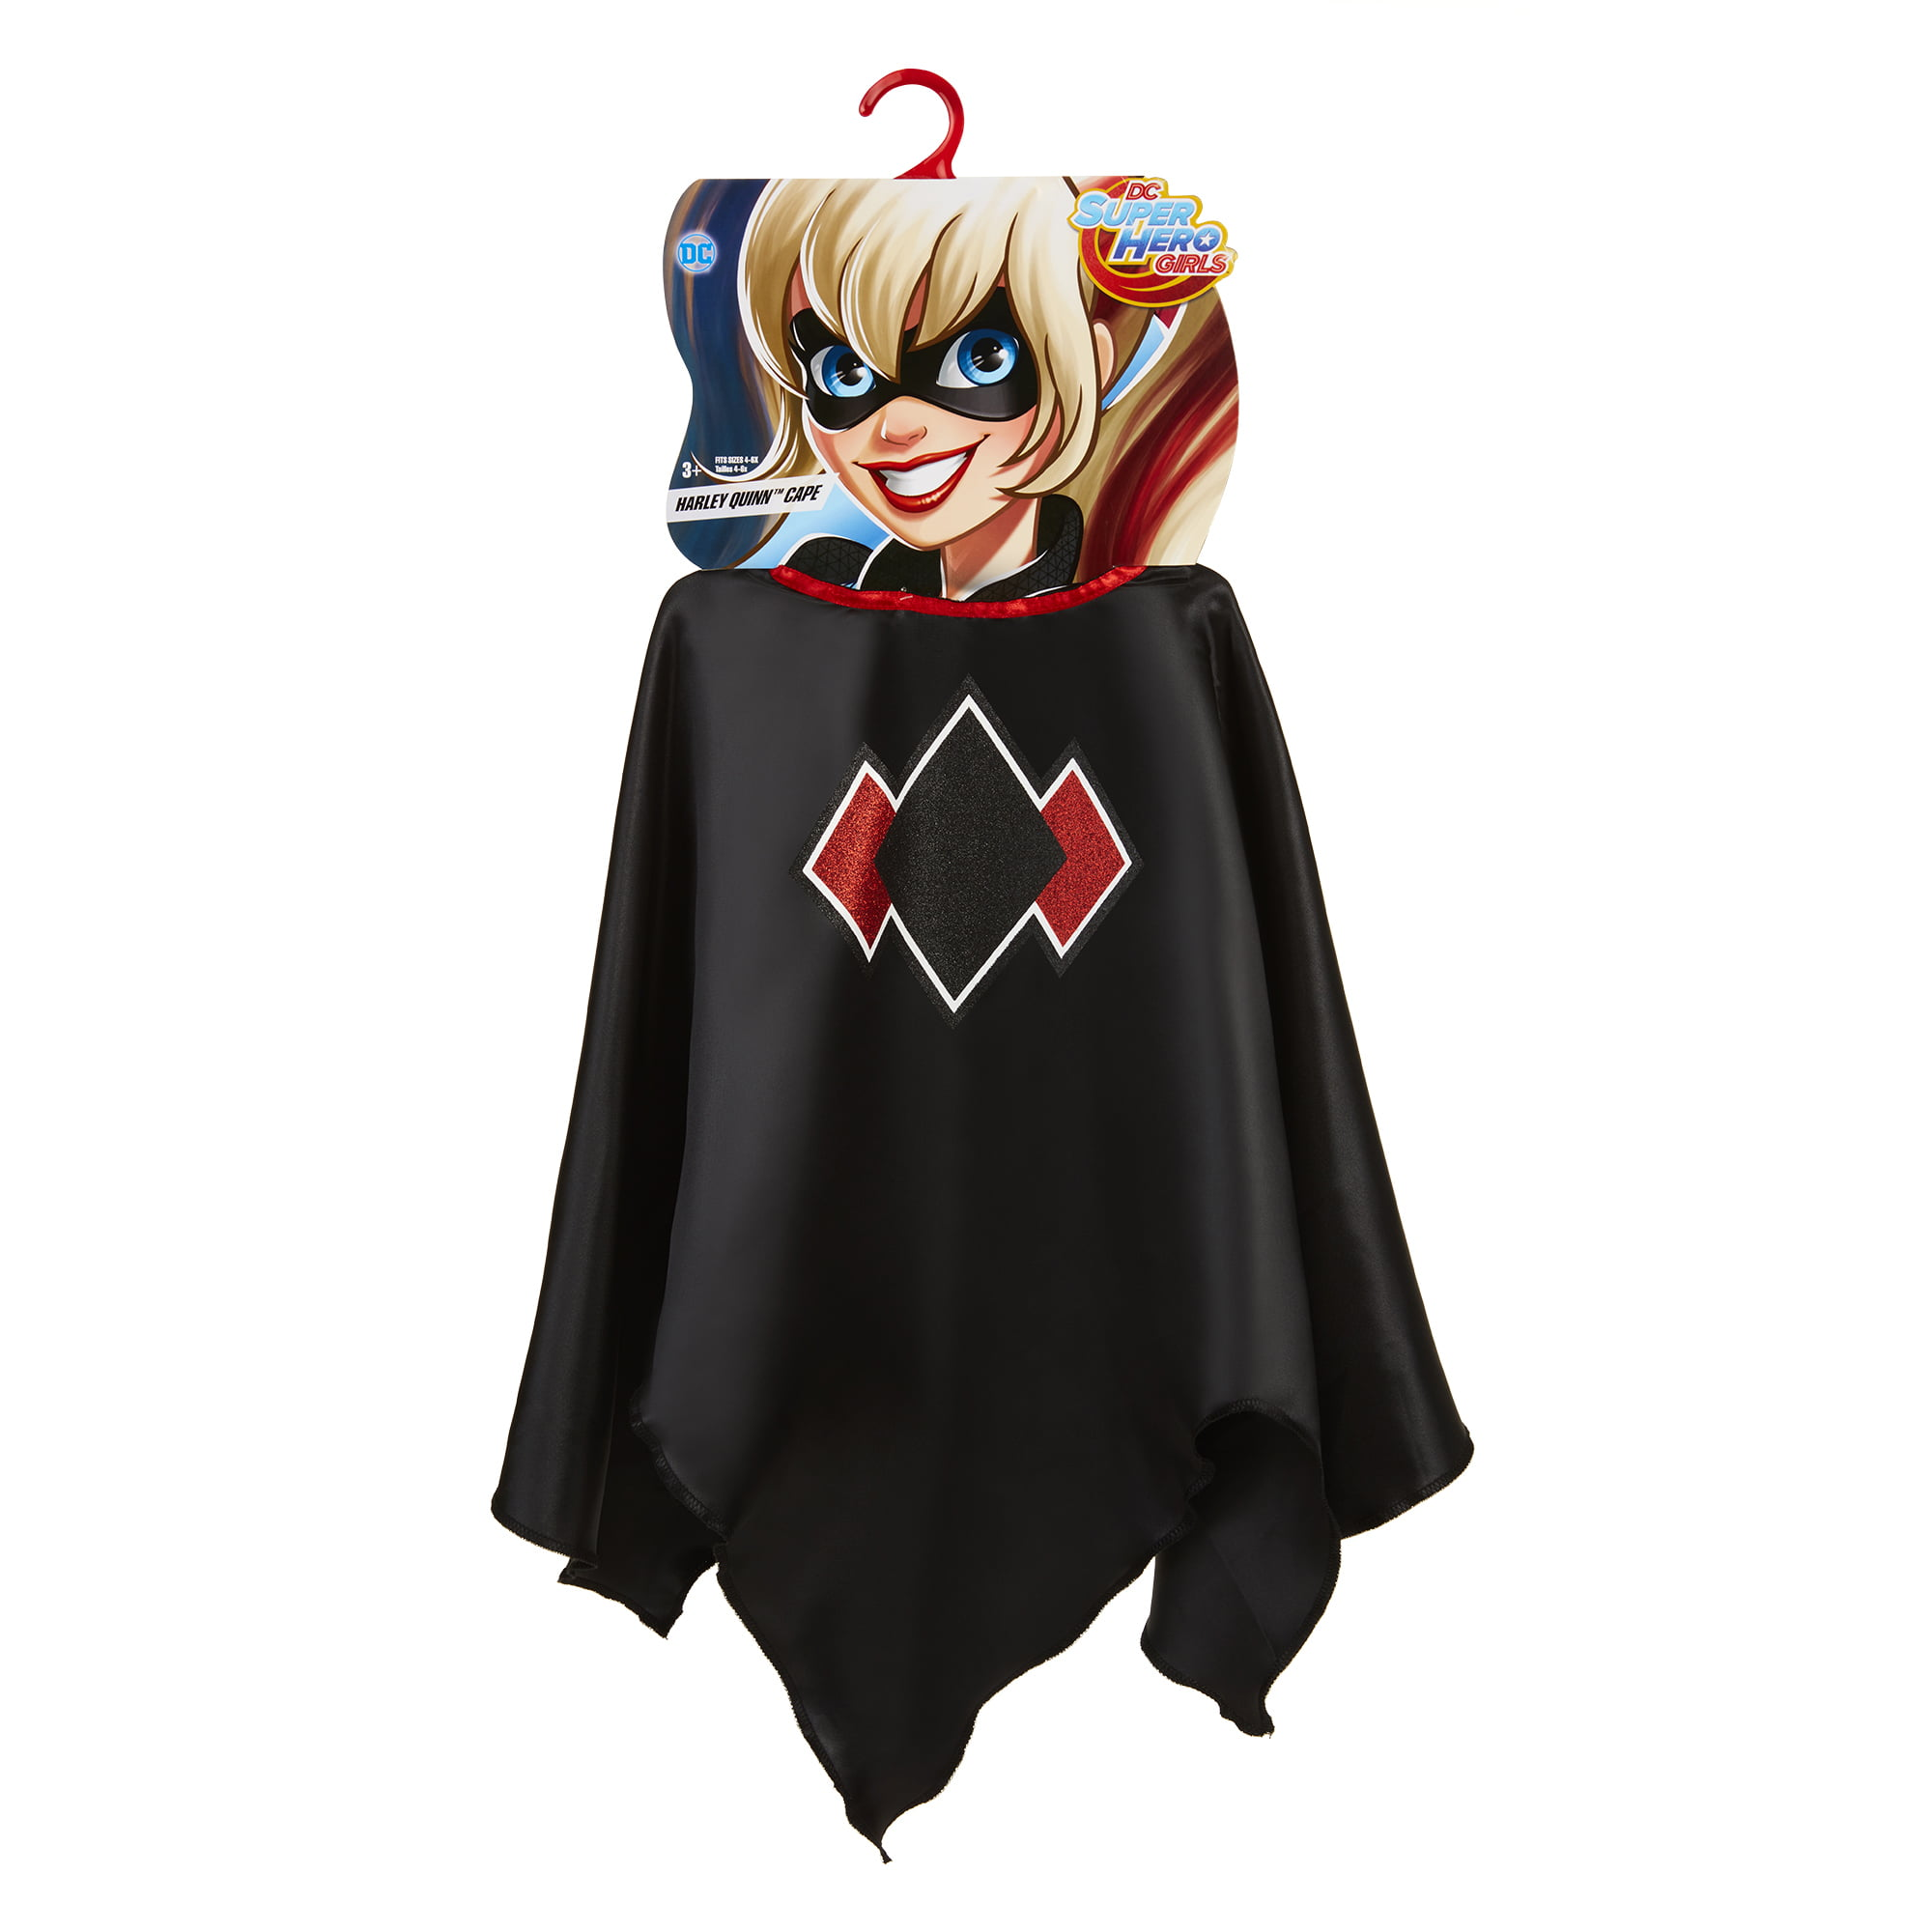 DC Super Hero Girls Harley Quinn by Jakks Pacific